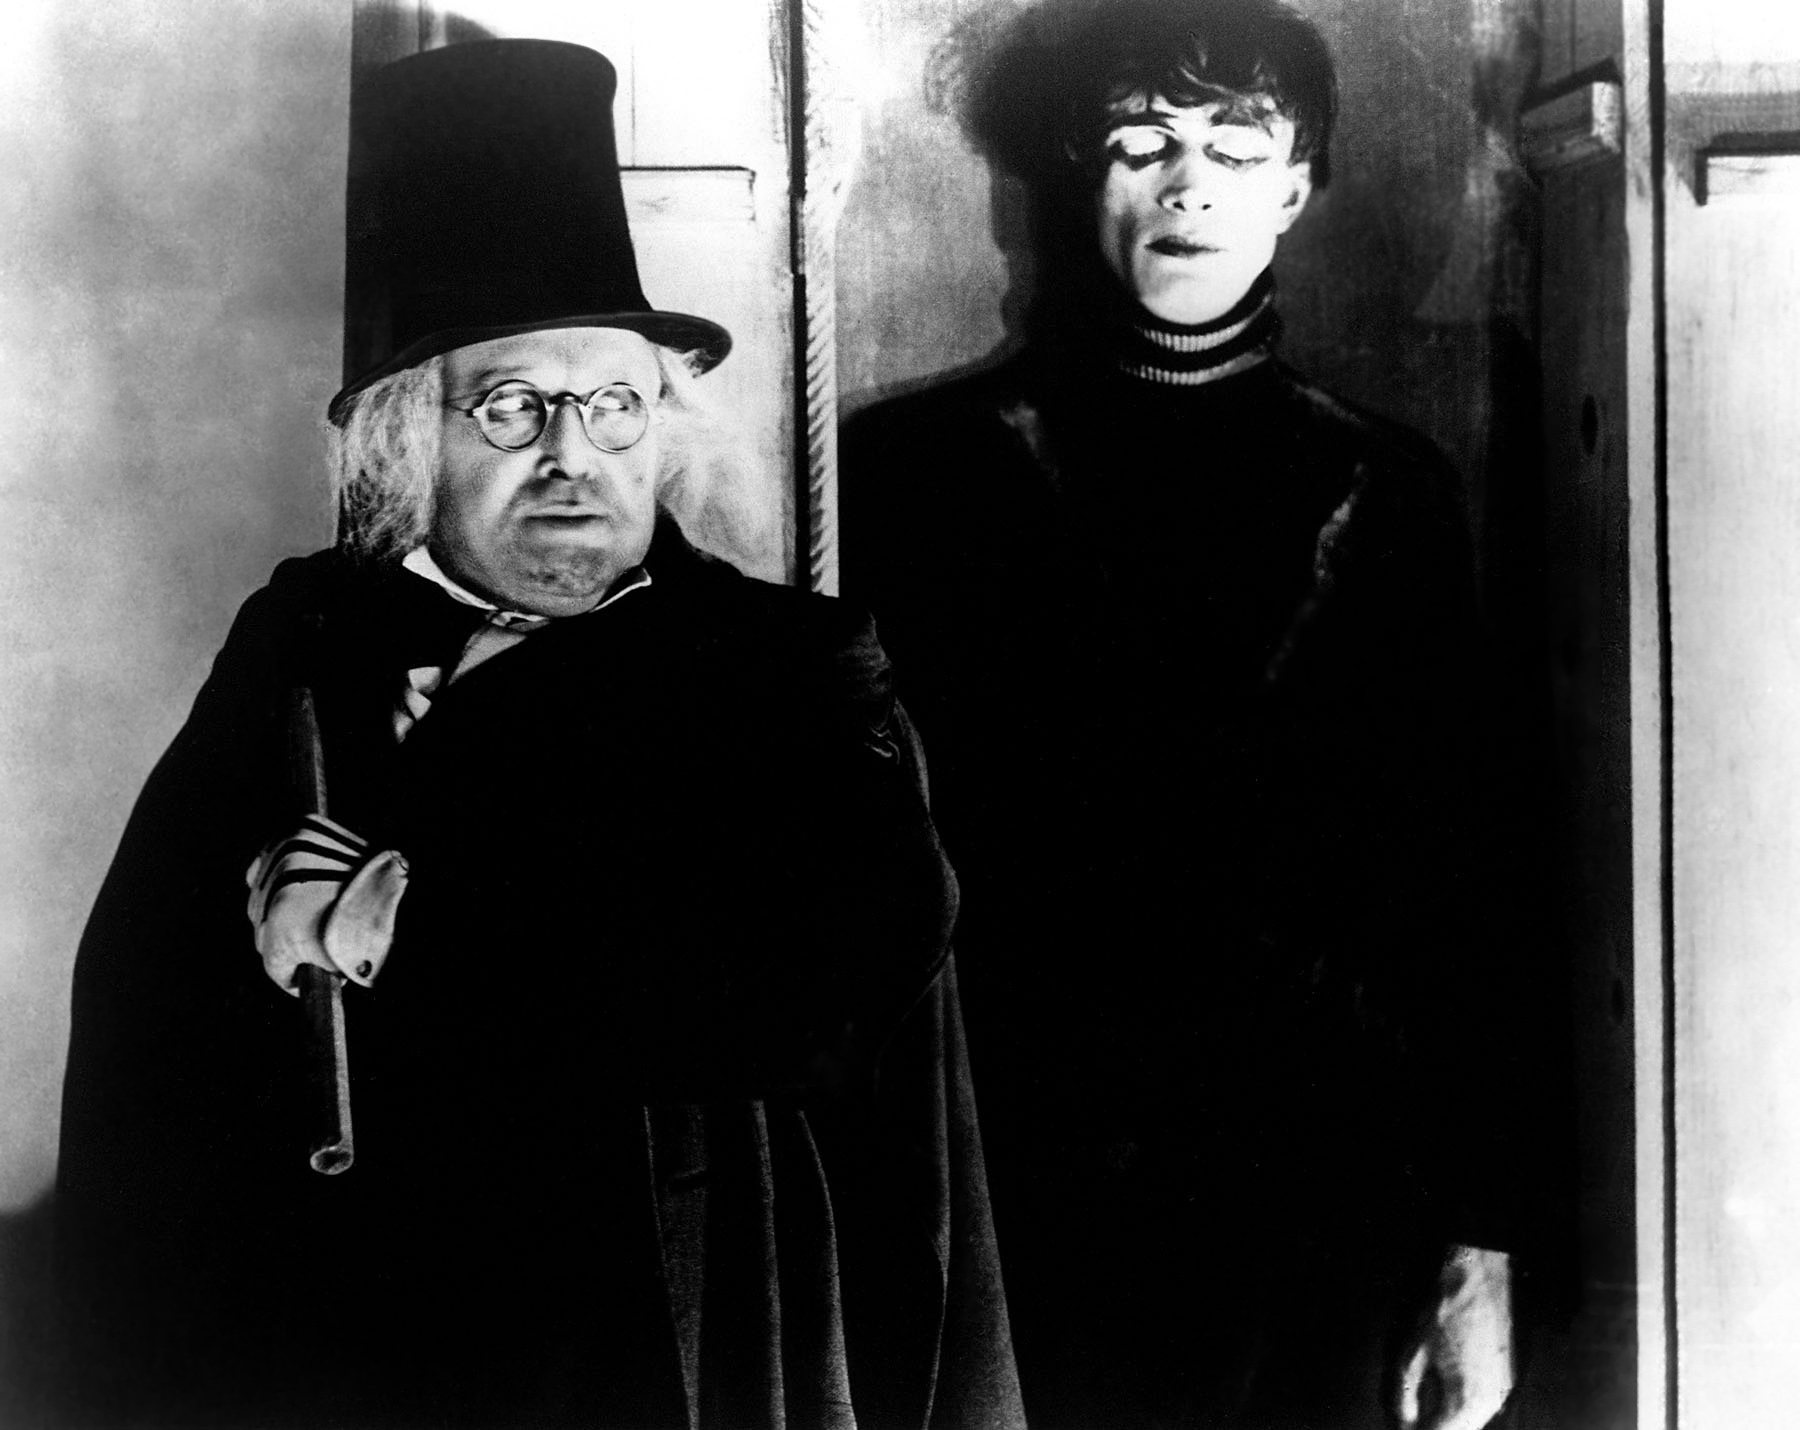 The Cabinet Of Dr Caligari 1920 Synopsis | Centerfordemocracy.org